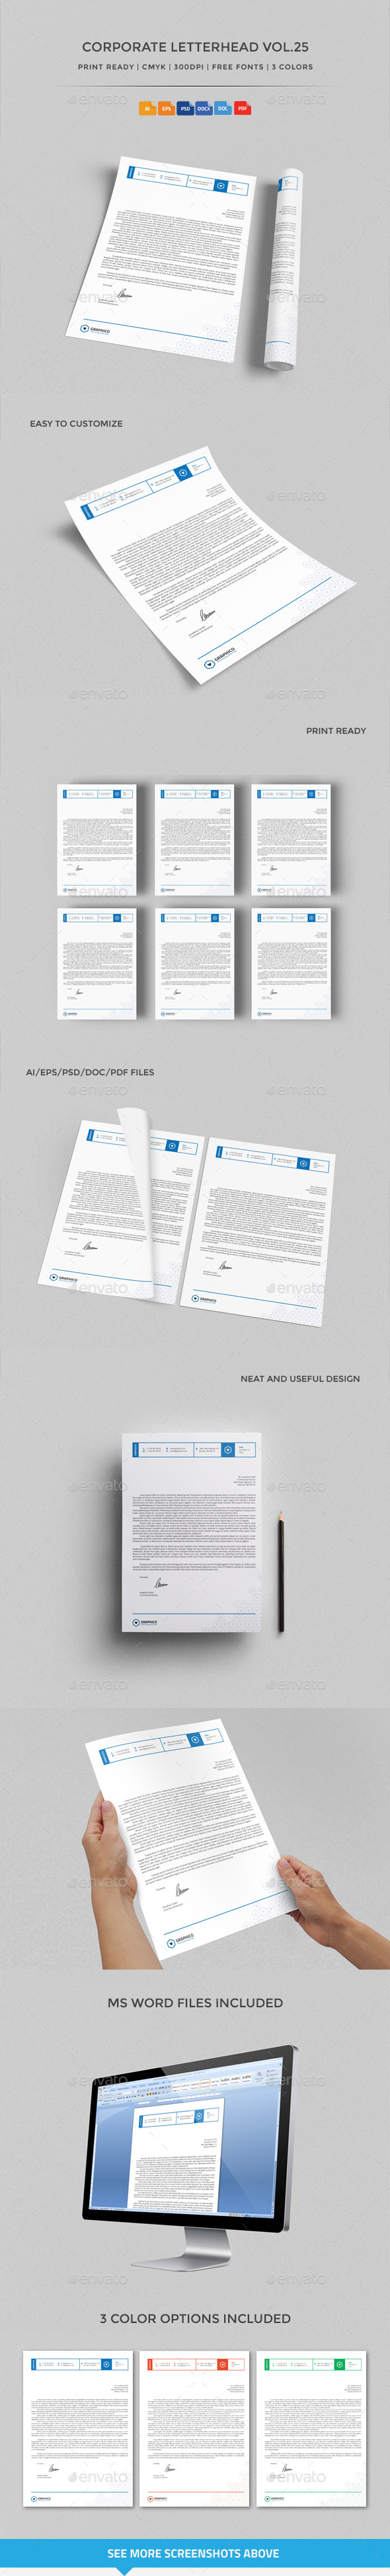 Corporate Letterhead vol.25 with MS Word DOC/DOCX - Stationery Print Templates